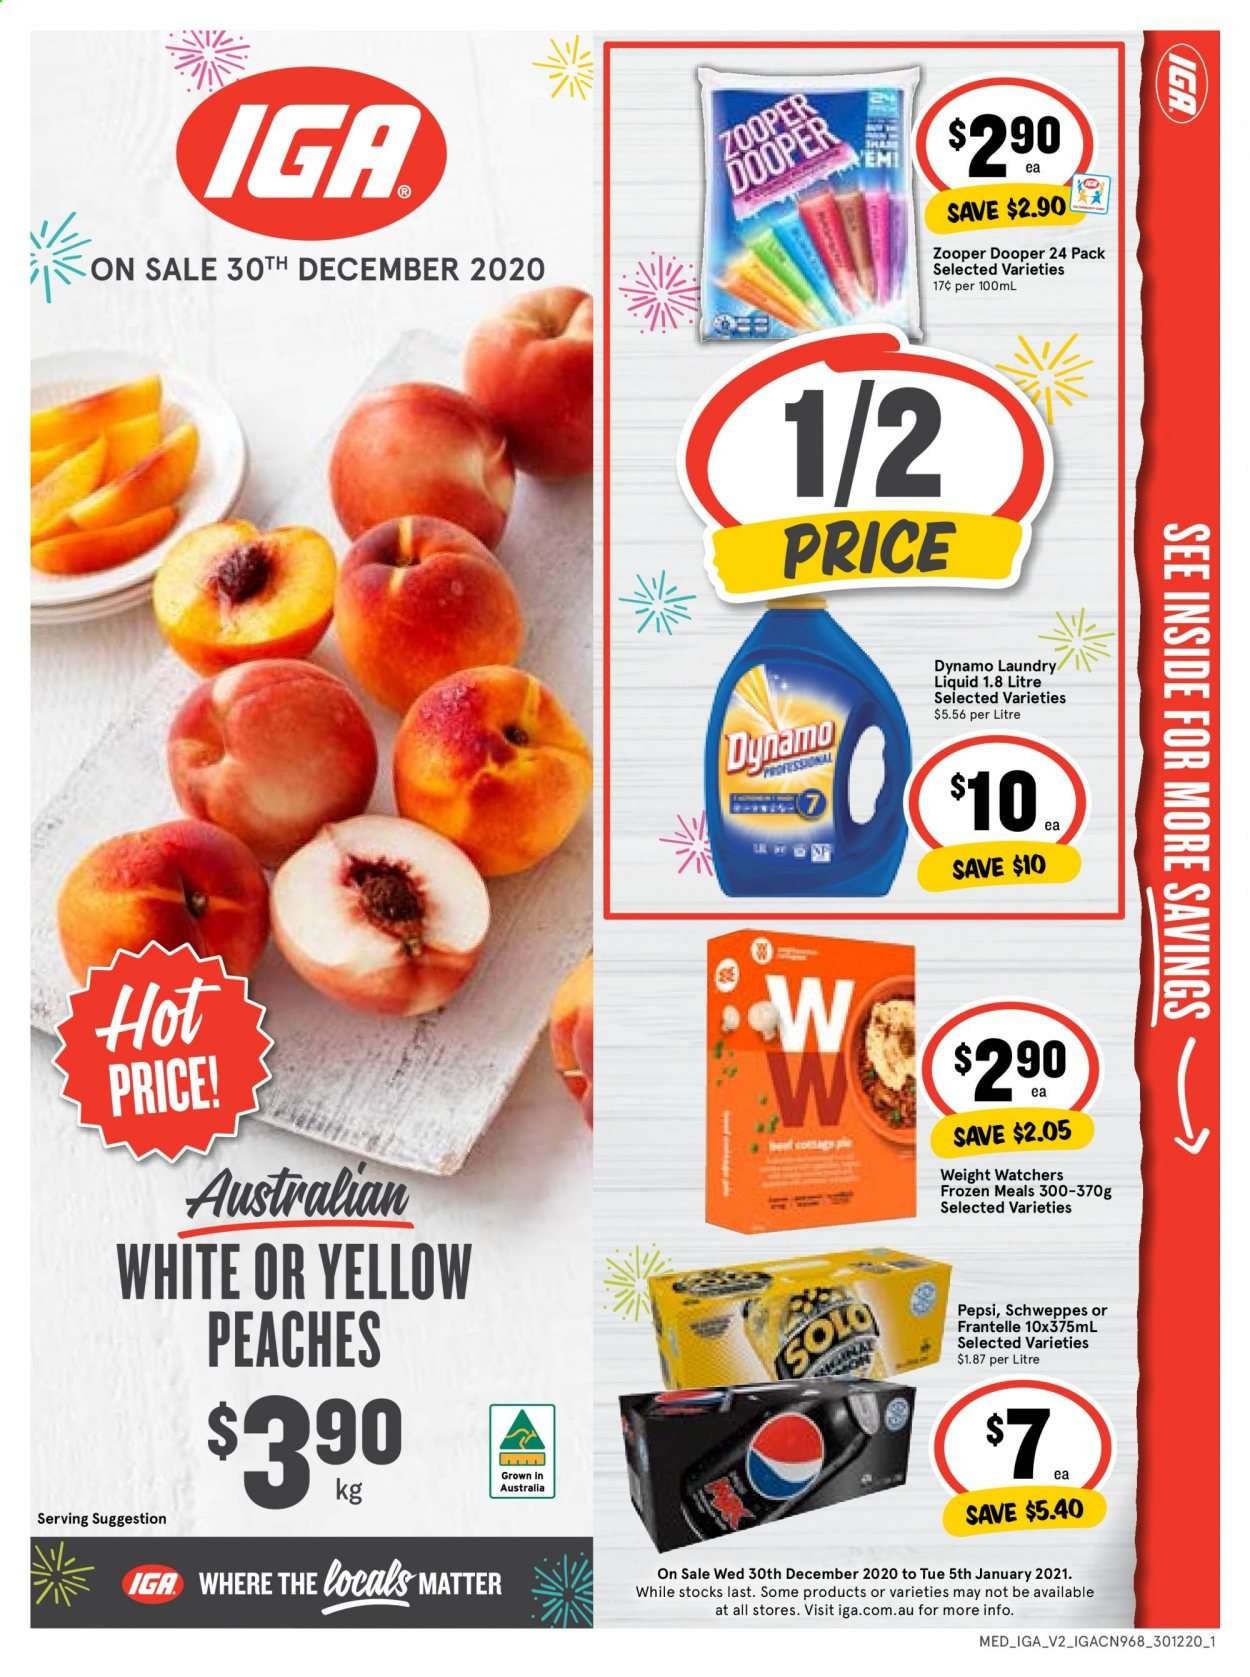 IGA Catalogue - 30.12.2020 - 5.1.2021 - Sales products - peaches, Zooper Dooper, Pepsi, Schweppes. Page 1.